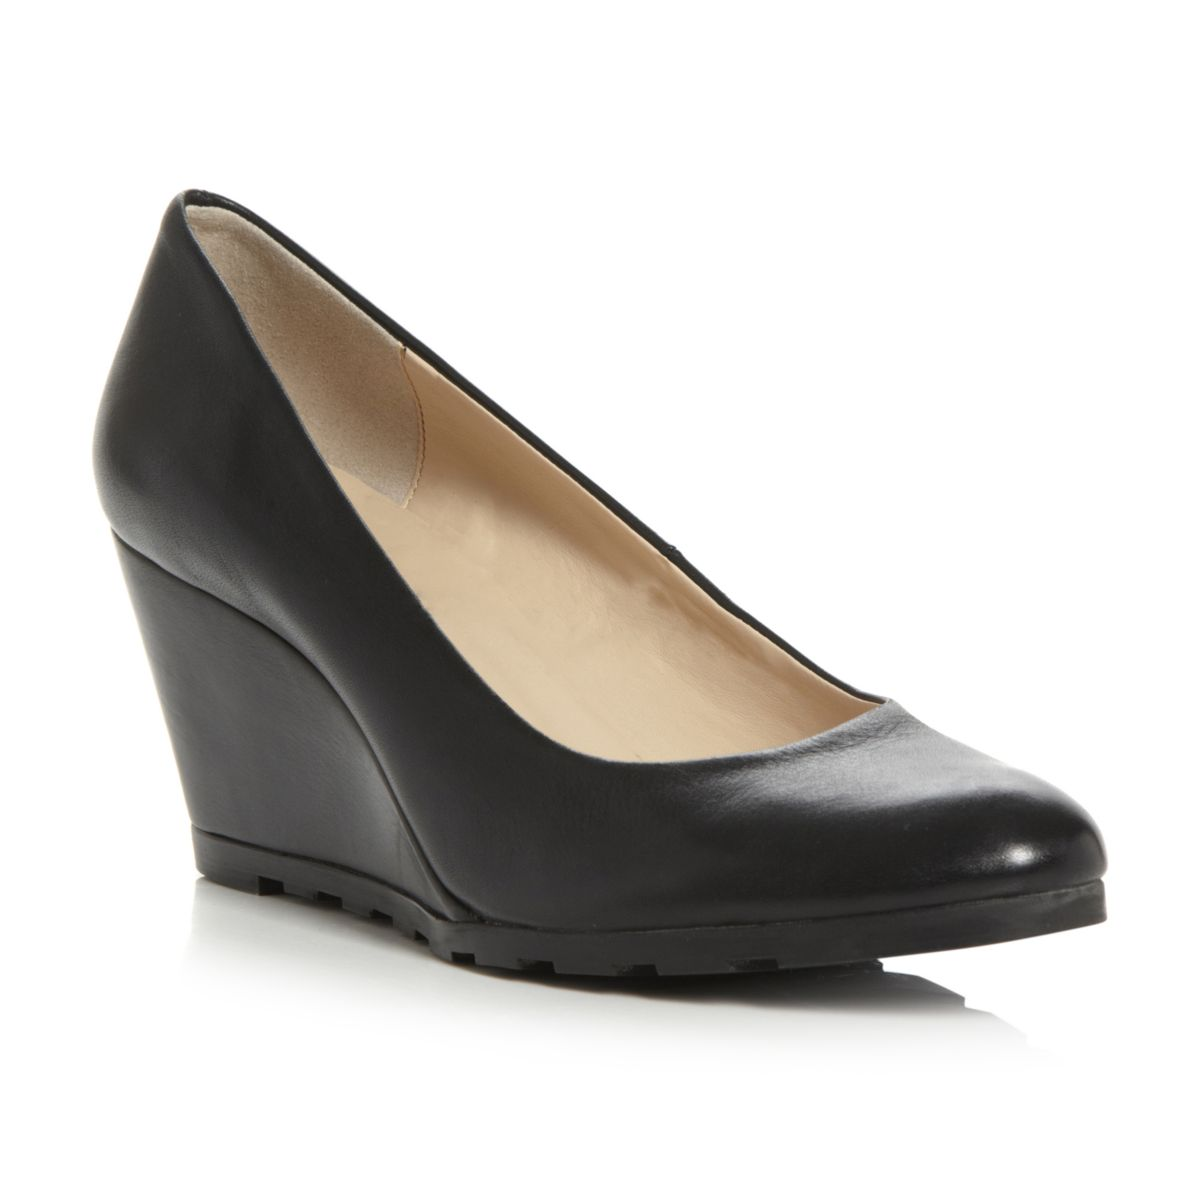 NEW-DUNE-LADIES-ATREAT-WOMENS-BLACK-CLEATED-MID-WEDGE-HEEL-COURT-SHOES-SIZE-3-8